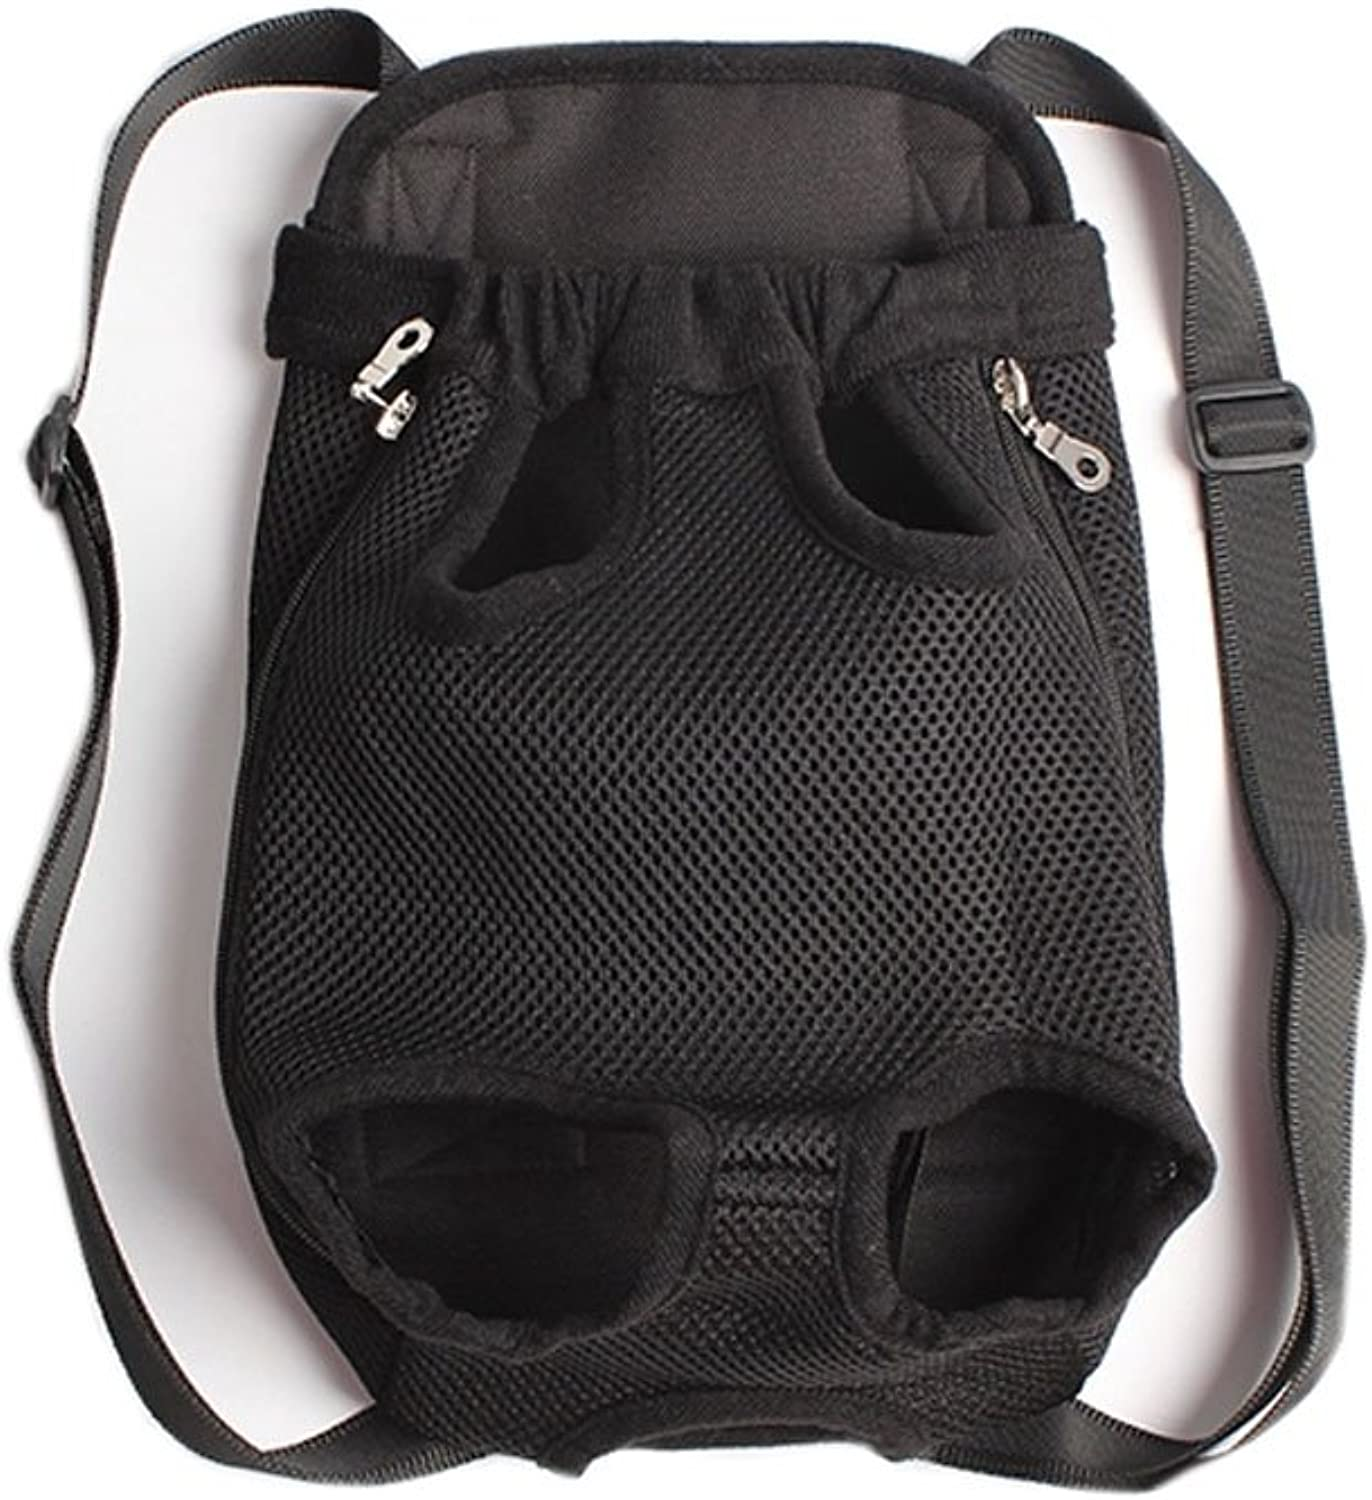 Portable Chest Carrier Backpack Bag for Pets Dogs Black(Bust 50cm, Up to 15LB)